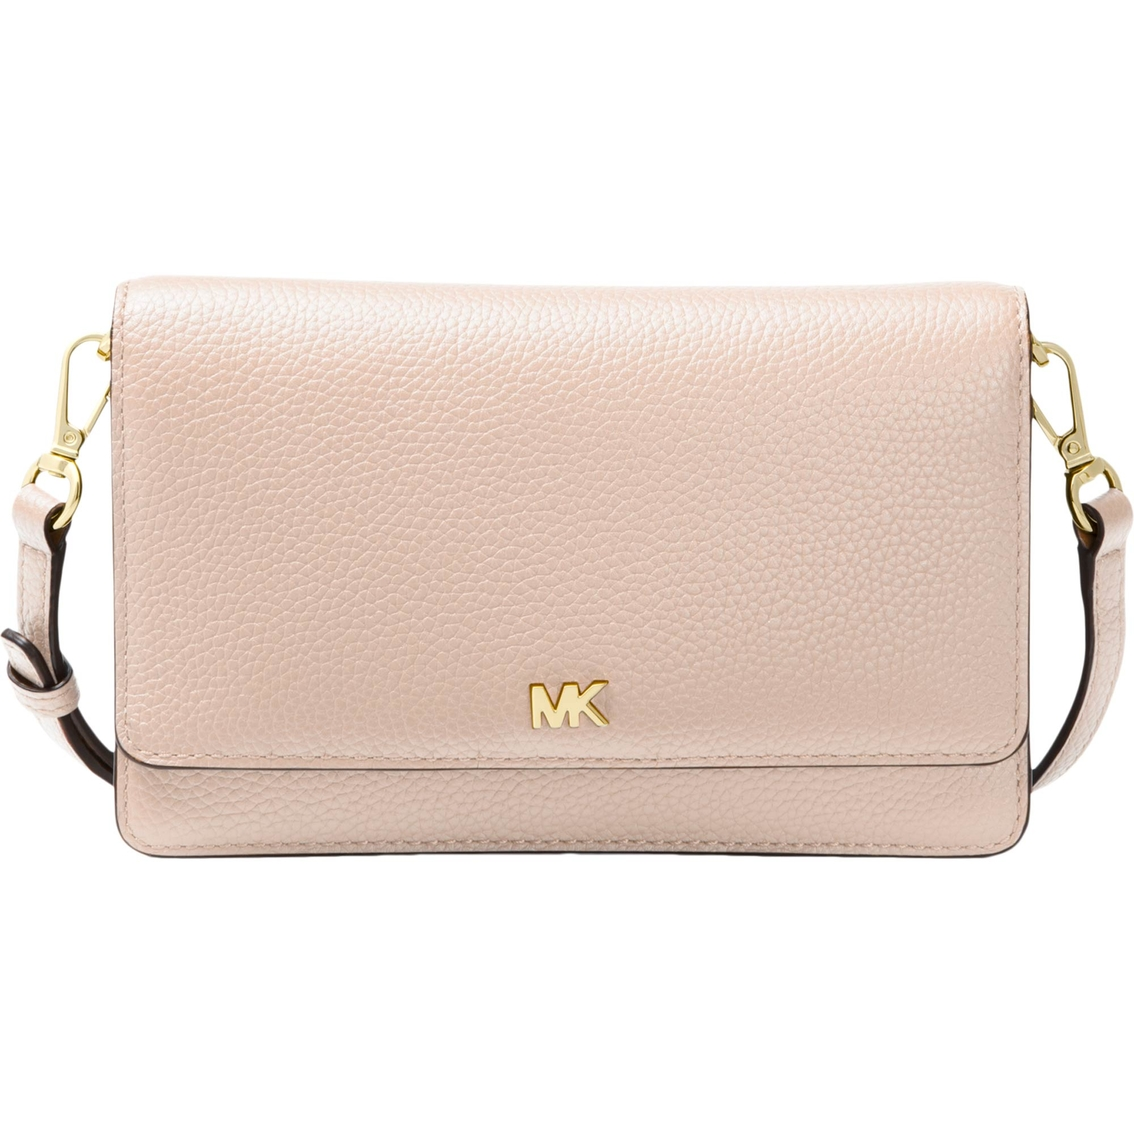 190dd6b5e58e Michael Kors Smartphone Leather Crossbody Bag | Cell Phone Cases ...